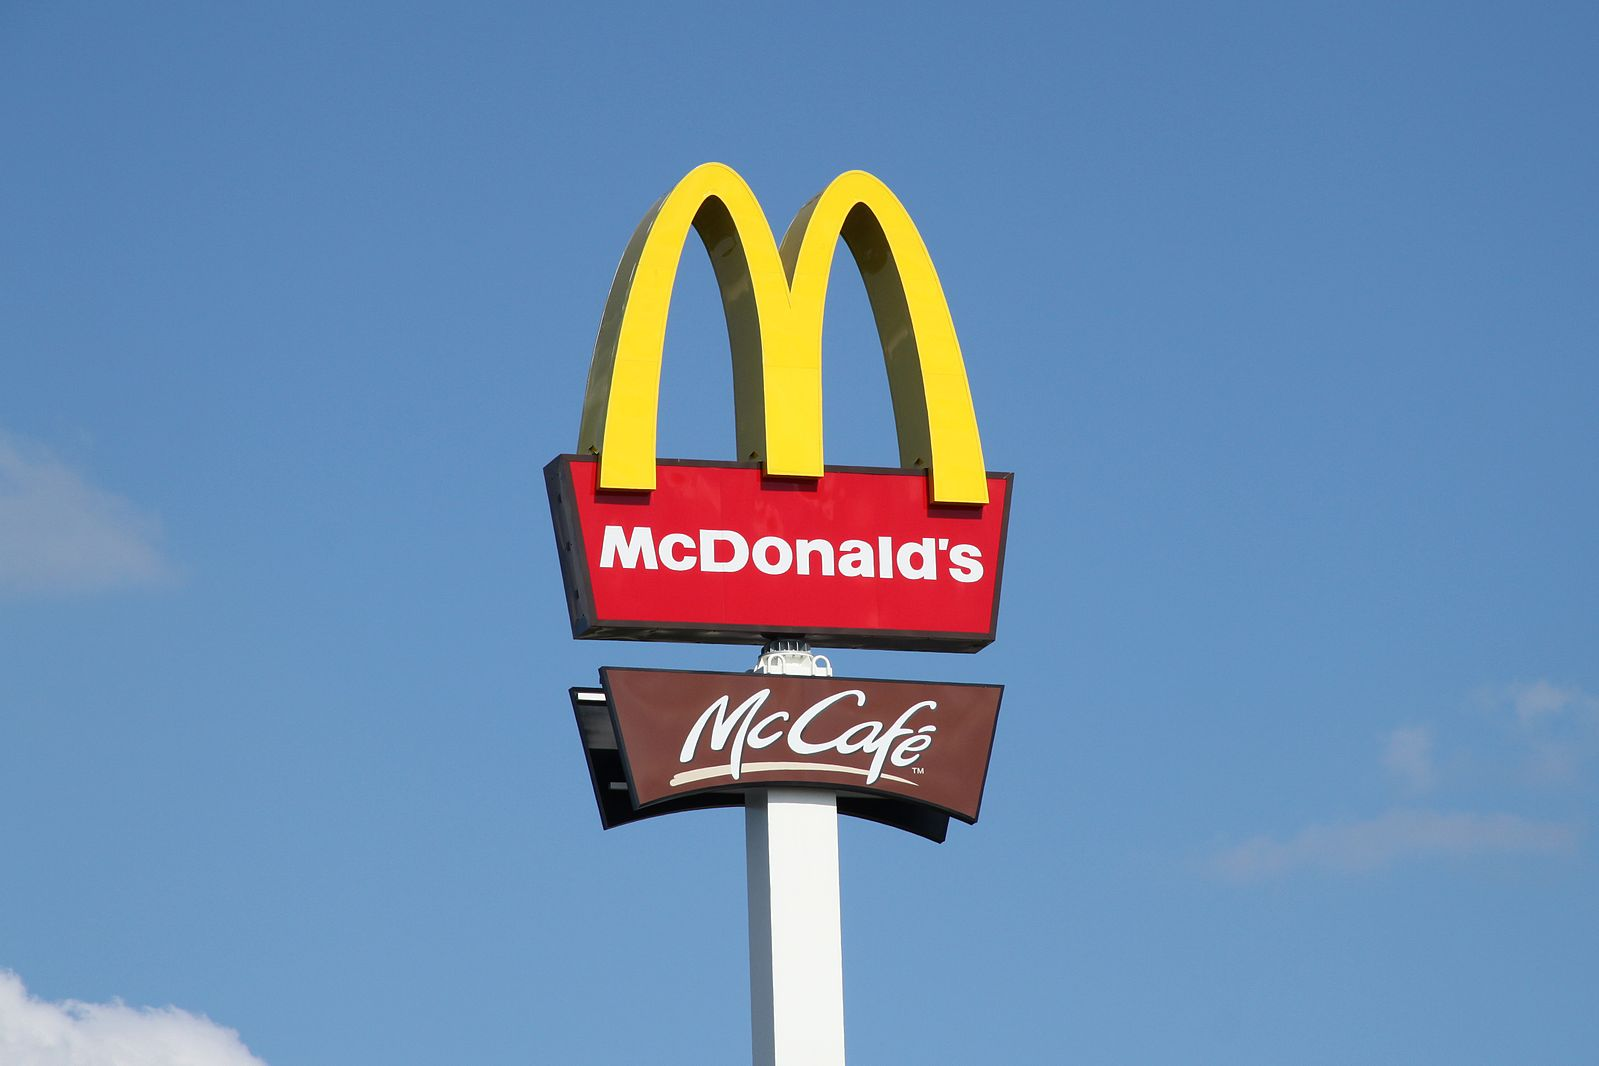 McDonald's reopening for walk-in takeaway and click and collect orders from June 17, The Manc